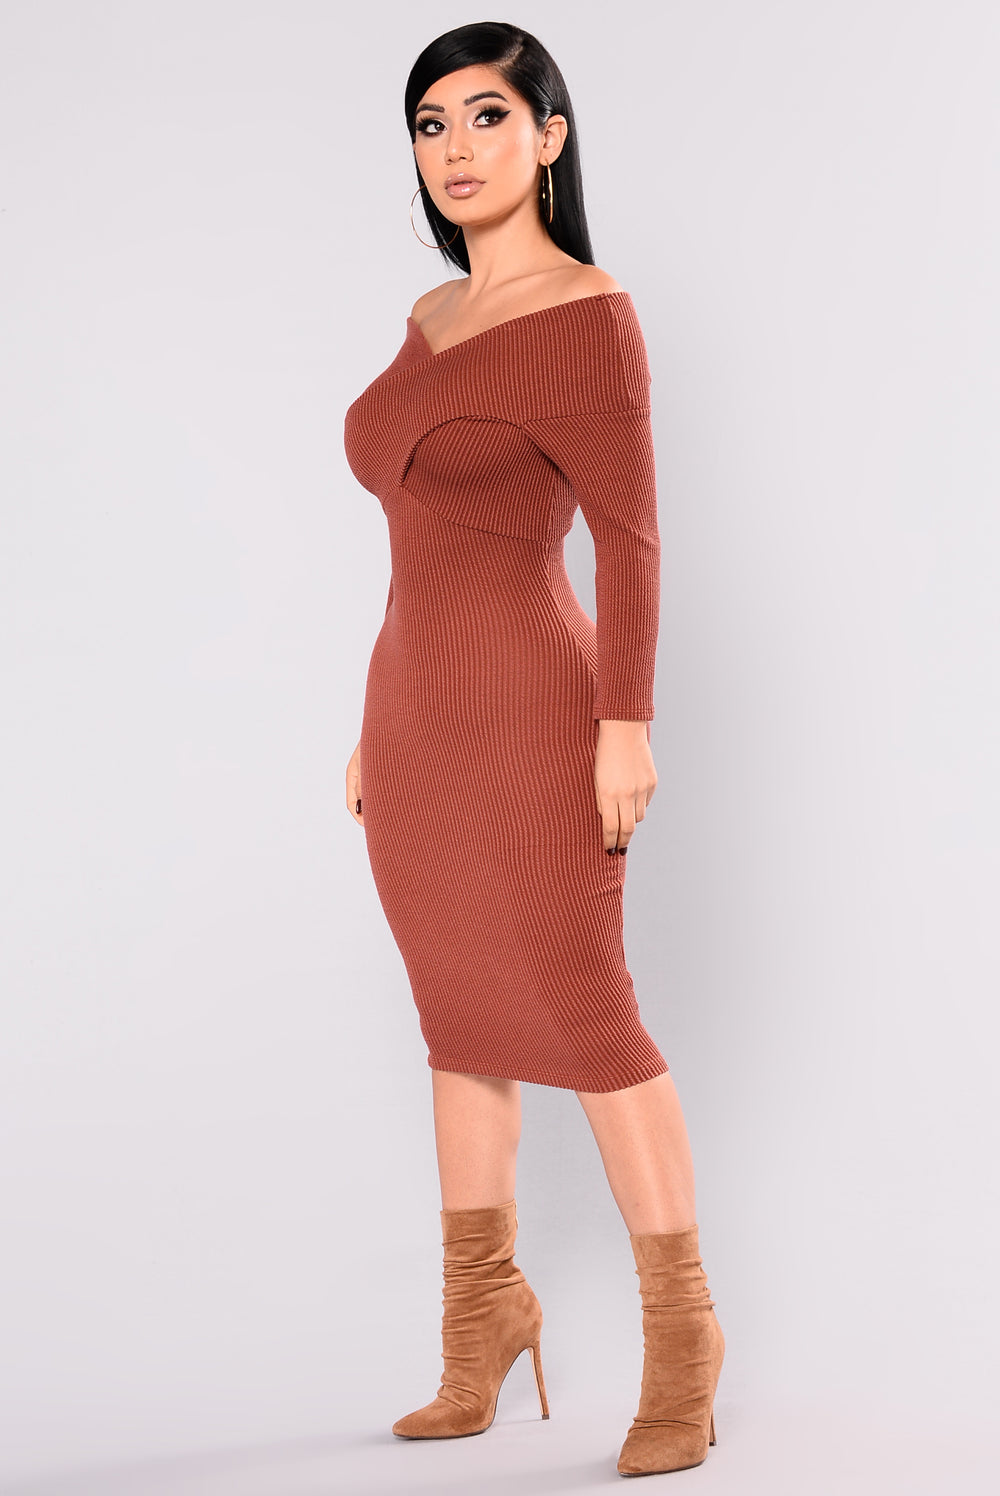 Cool Breeze Midi Dress - Marsala